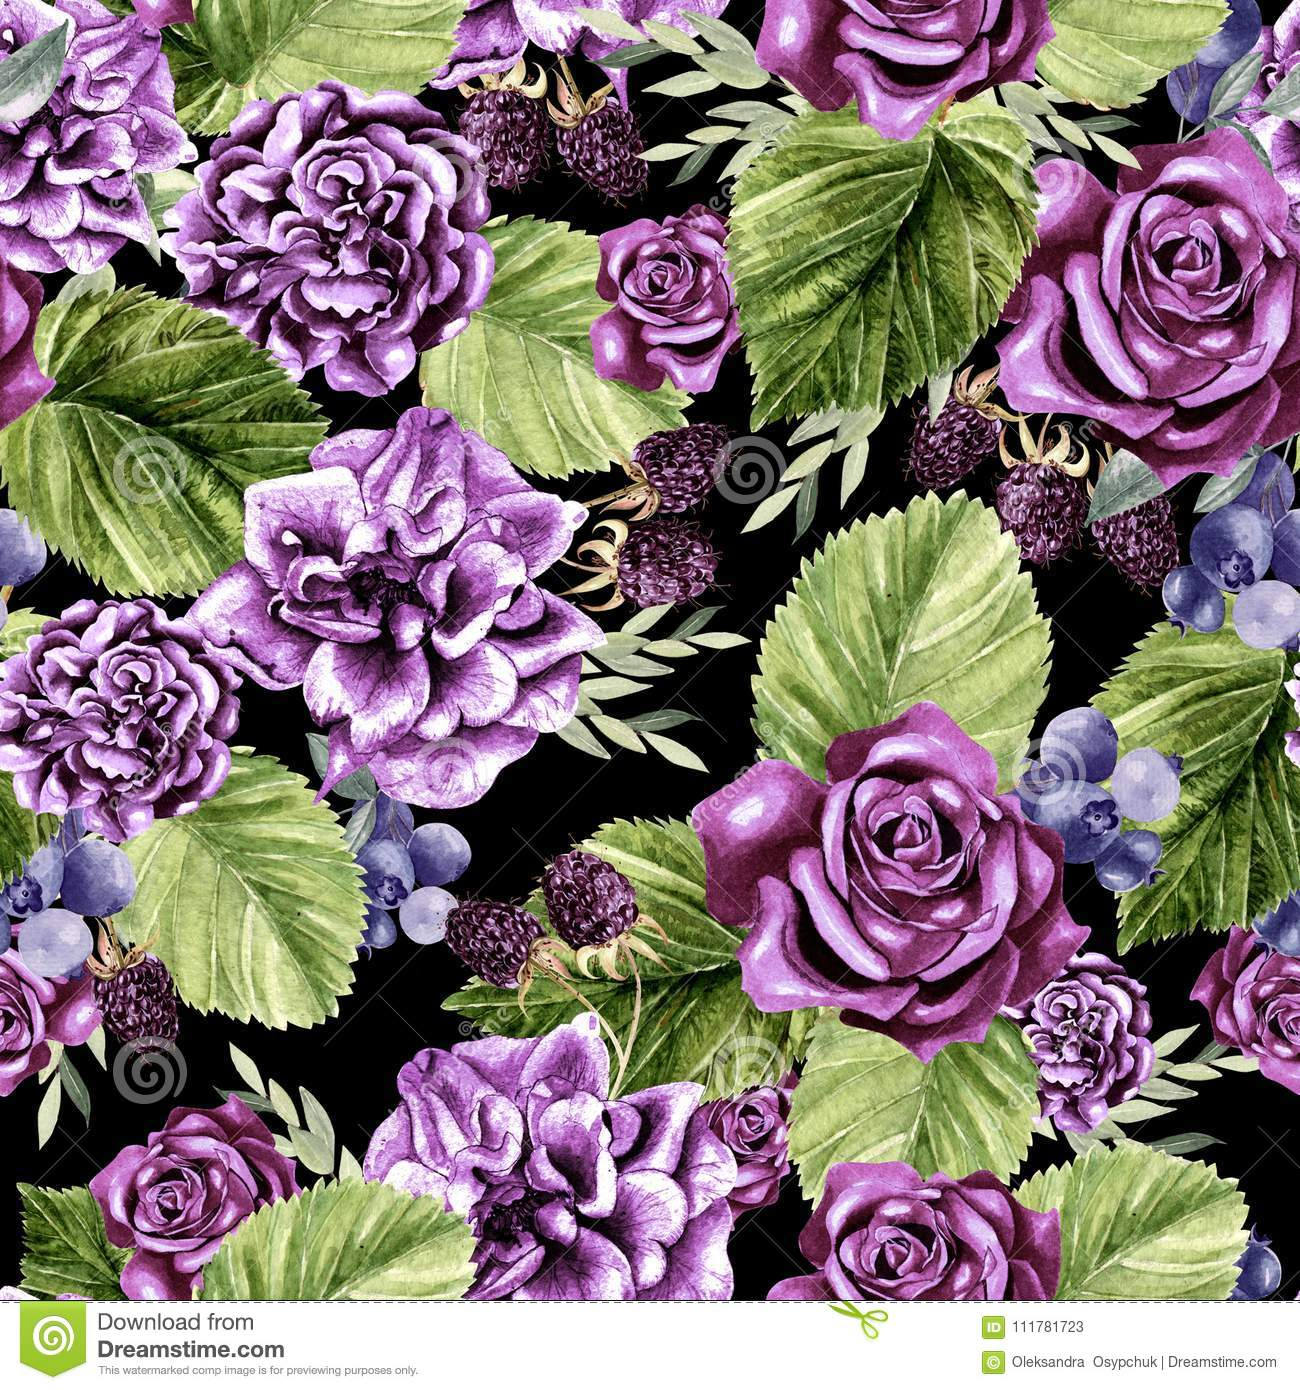 Beautiful watercolor pattern with flowers rose and blackberry, eucalyptus leaves.